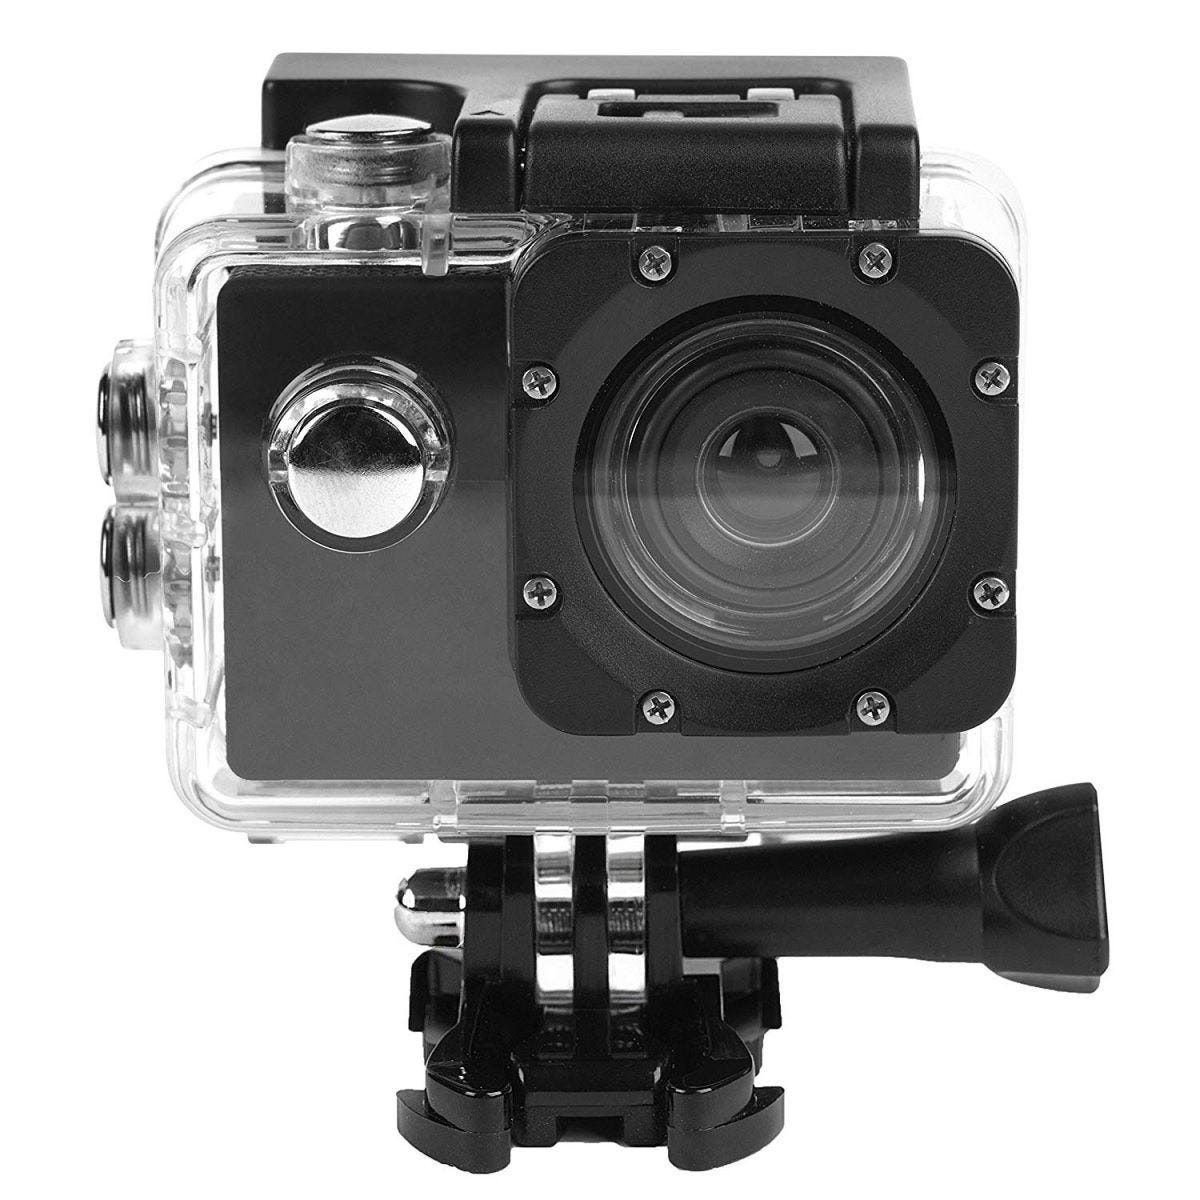 Intempo Waterproof Wide Angle IPX8 Action Camera - Black